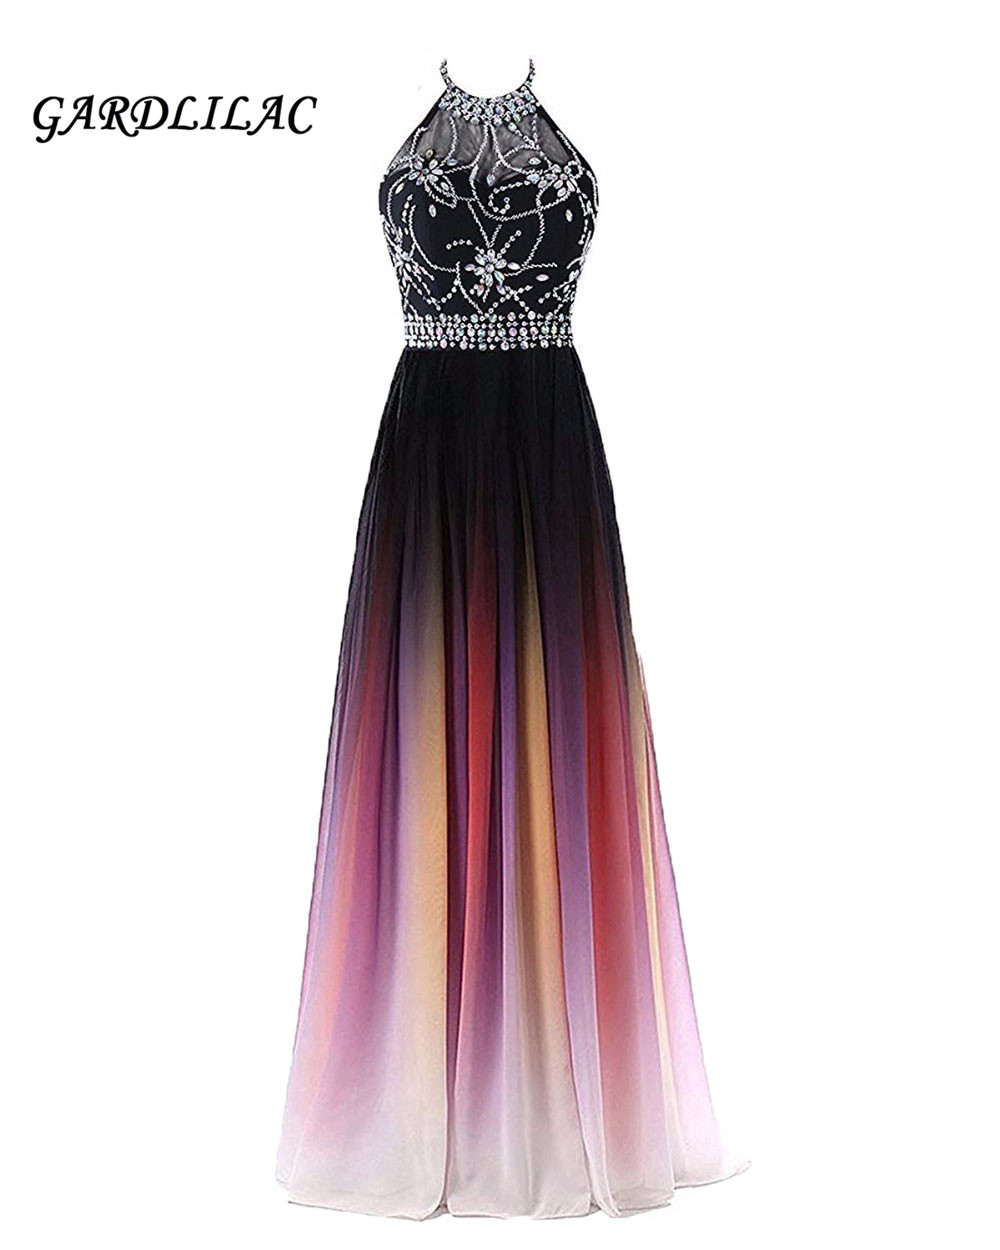 Halter Beaded Gradient Chiffon Evening Dresses 2019 Sequins Prom Dress Plus Size Ombre Prom Long Elegant Dress